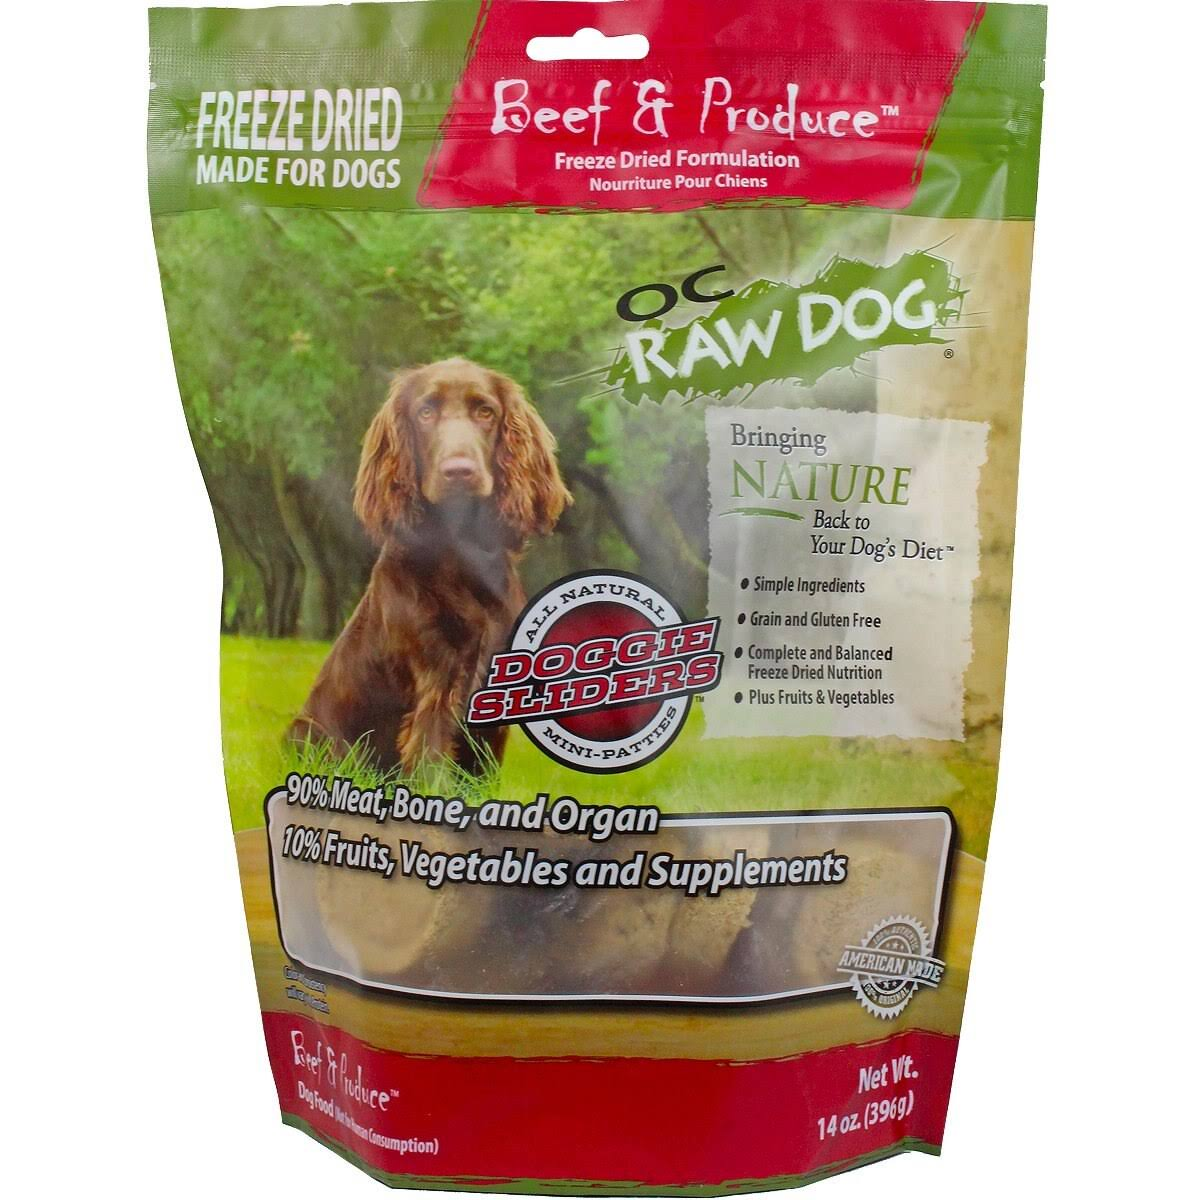 OC Raw Dog Freeze Dried Dog Food - Beef & Produce